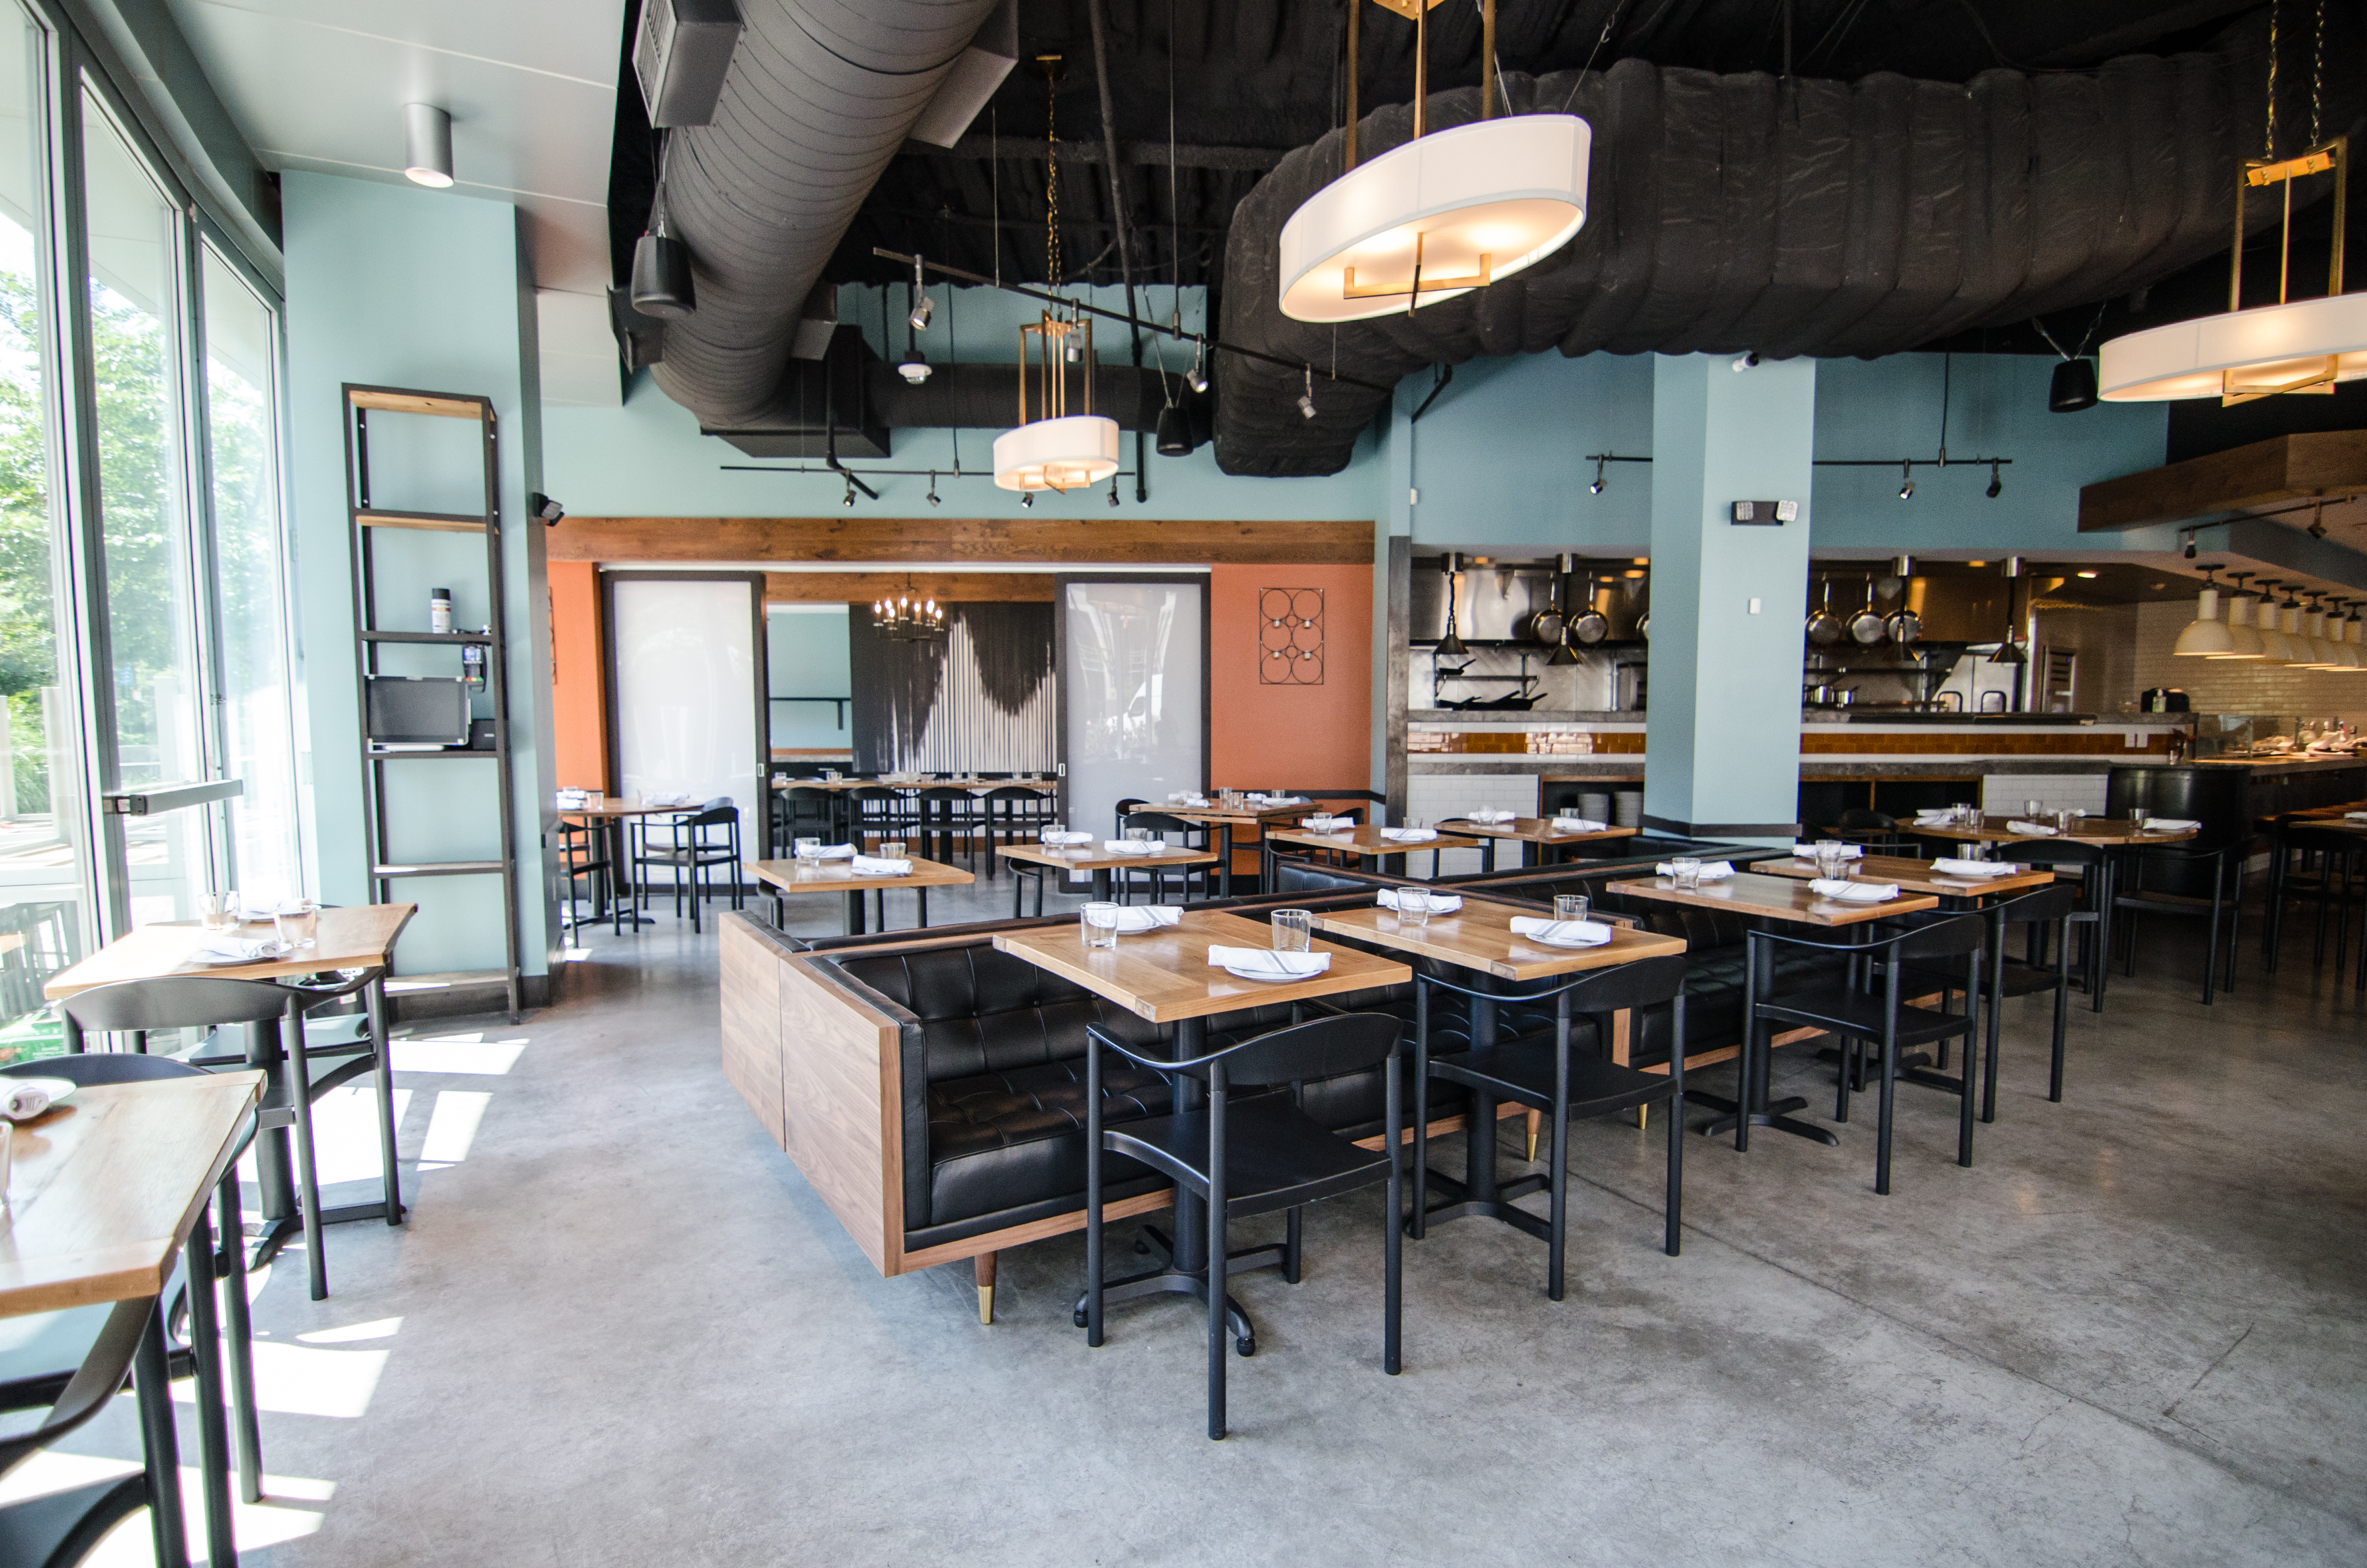 A wide shot of a restaurant space with a polished cement floor, light blue walls, light wooden tables with a mix of black chairs and low black banquette seating, and some orange accents.